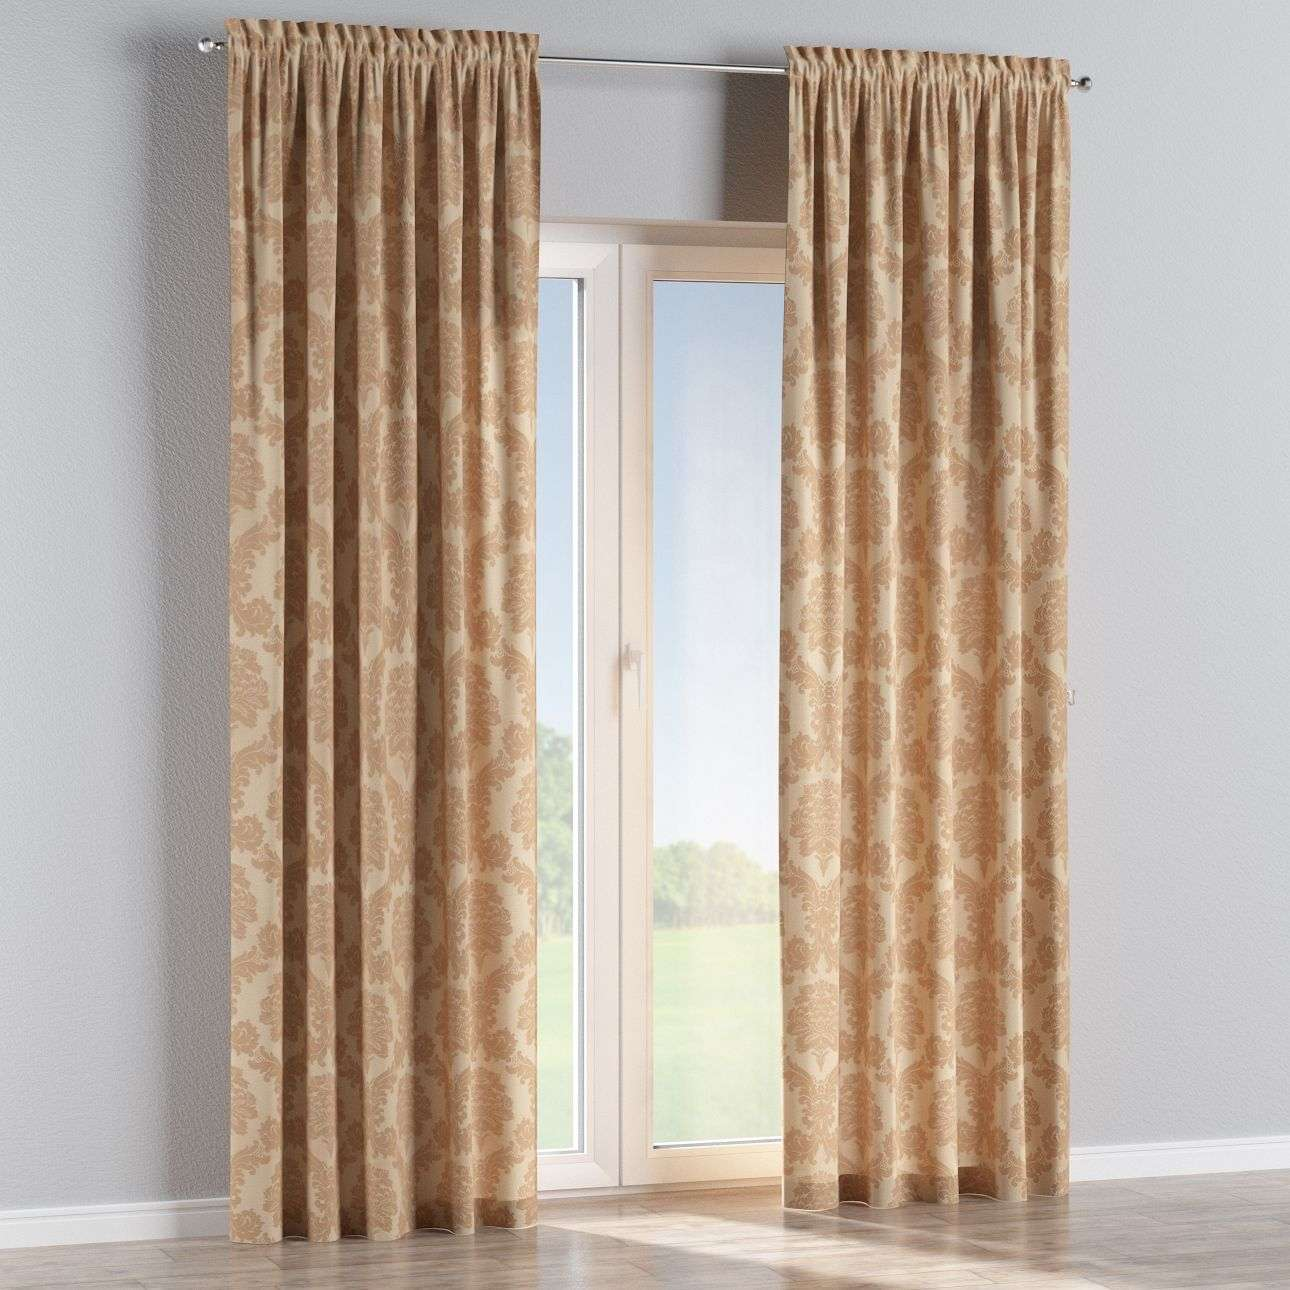 Slot and frill curtains 130 x 260 cm (51 x 102 inch) in collection Damasco, fabric: 613-04